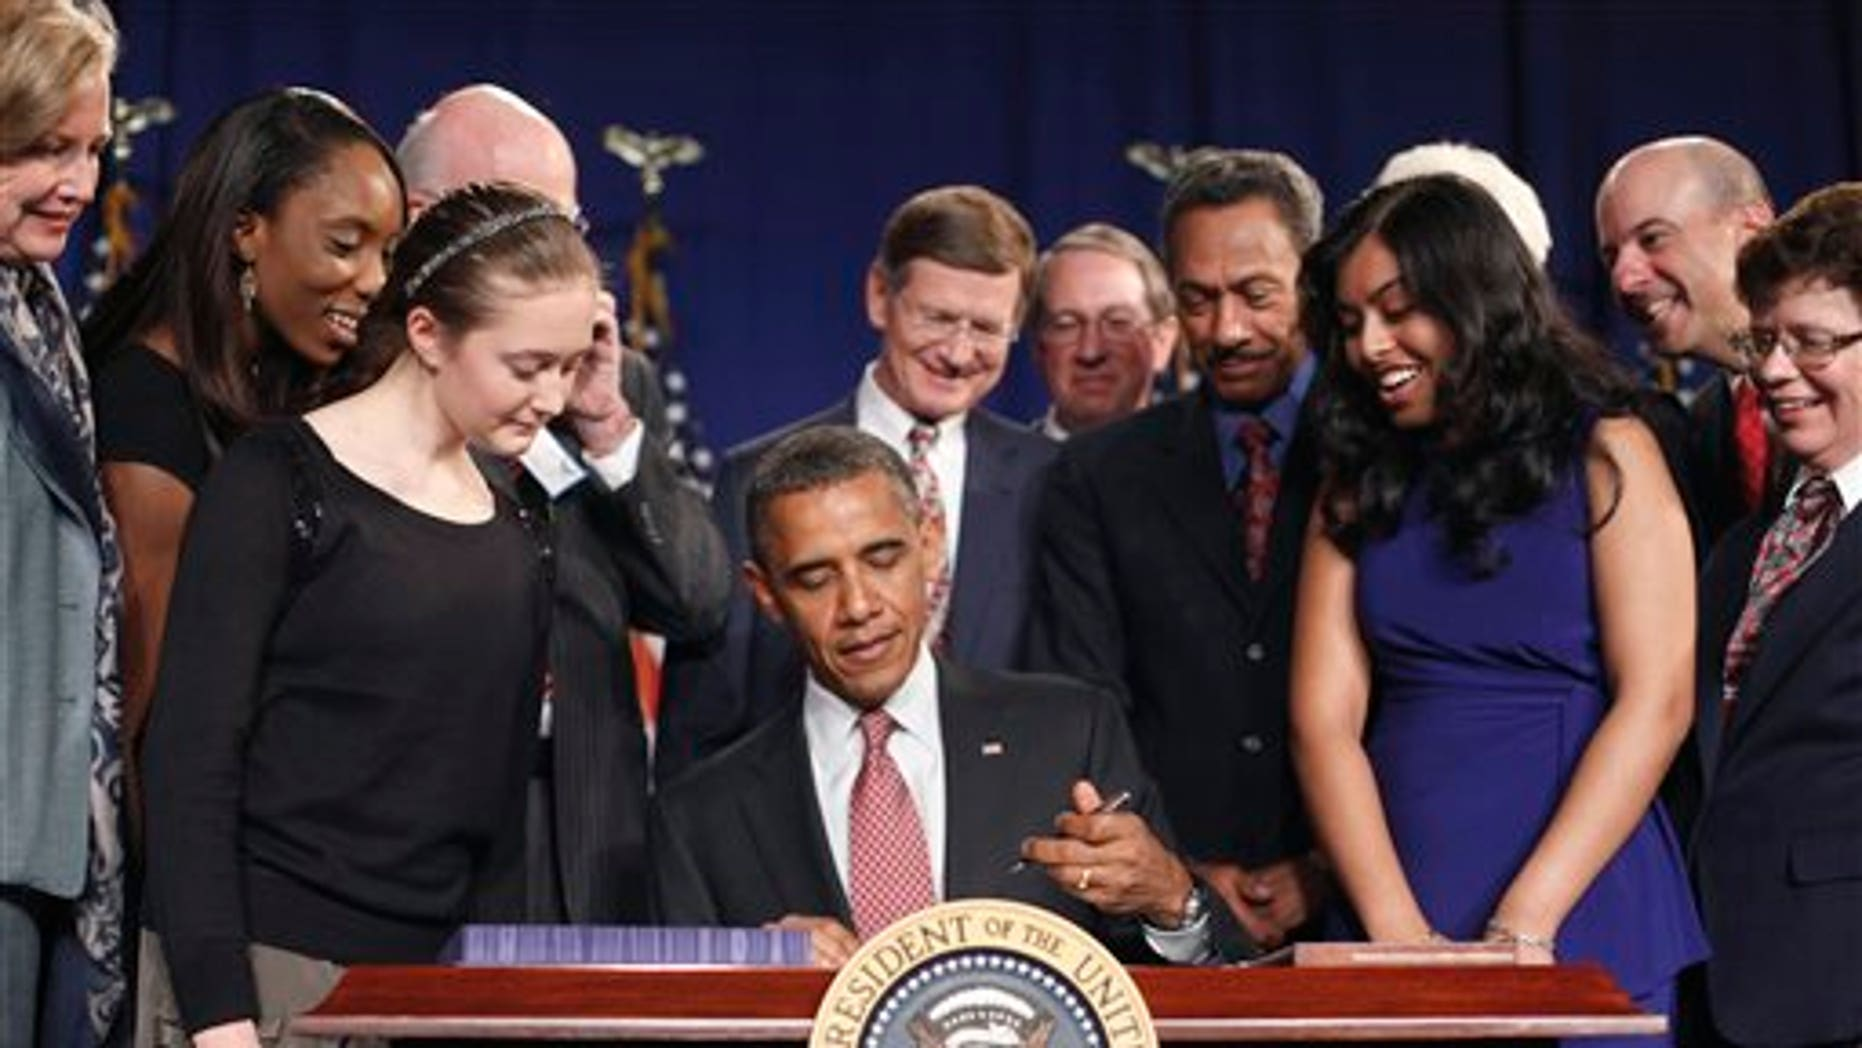 September 16: President Barack Obama signs the American Invents Act at Thomas Jefferson High School for Science and Technology in Alexandria, Va.